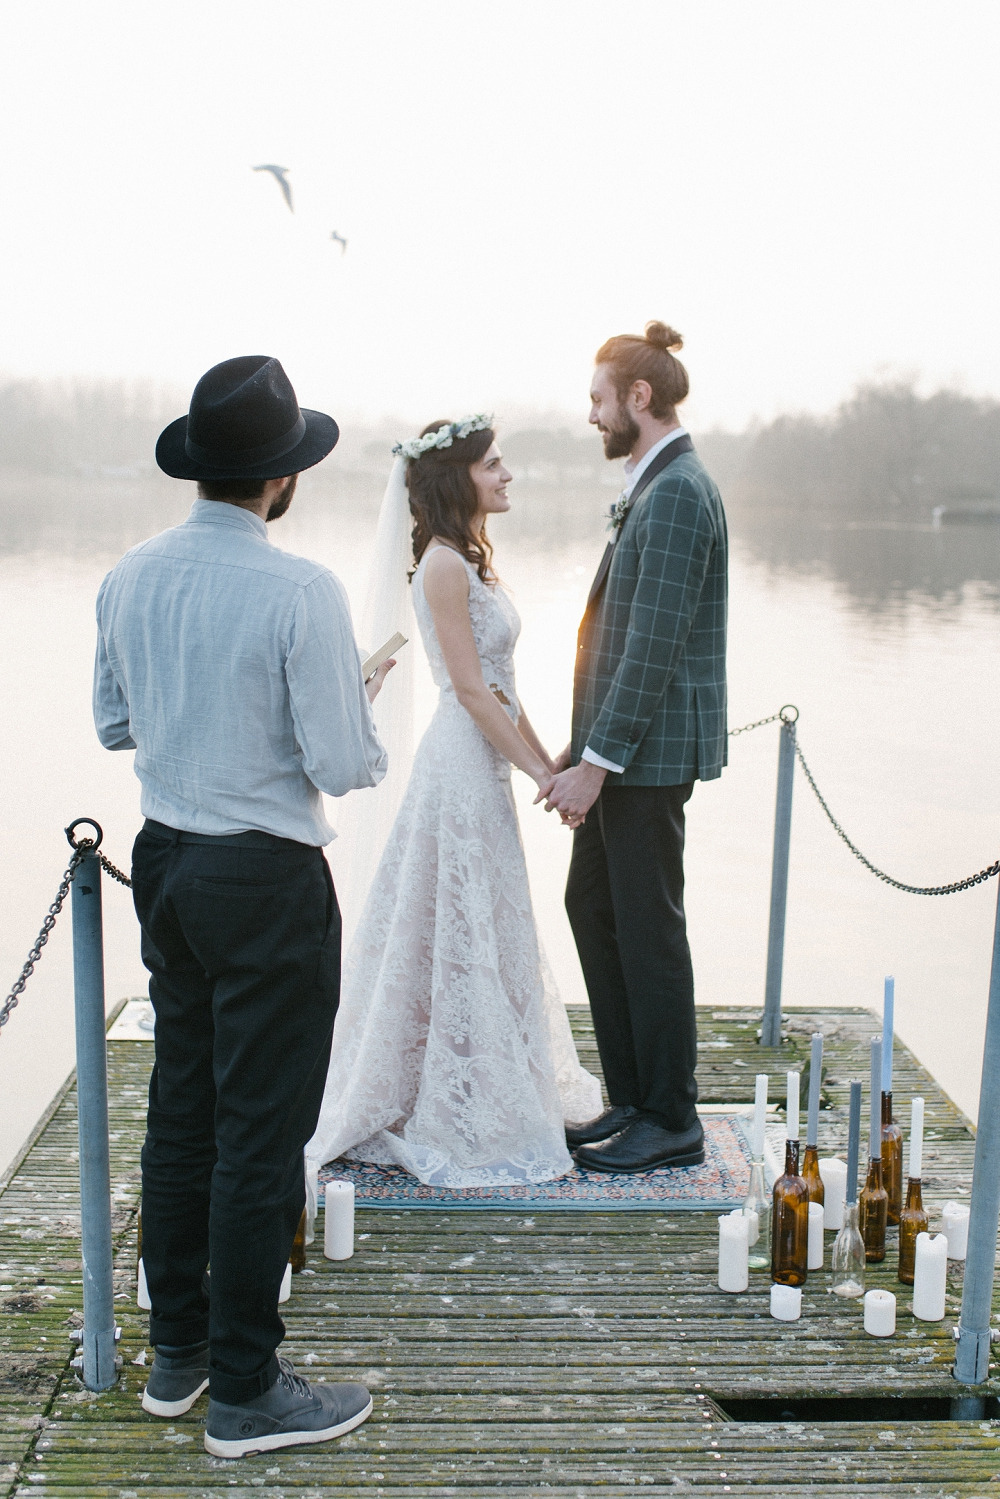 Intimate Elopement Style Wedding In Italy Images From ...